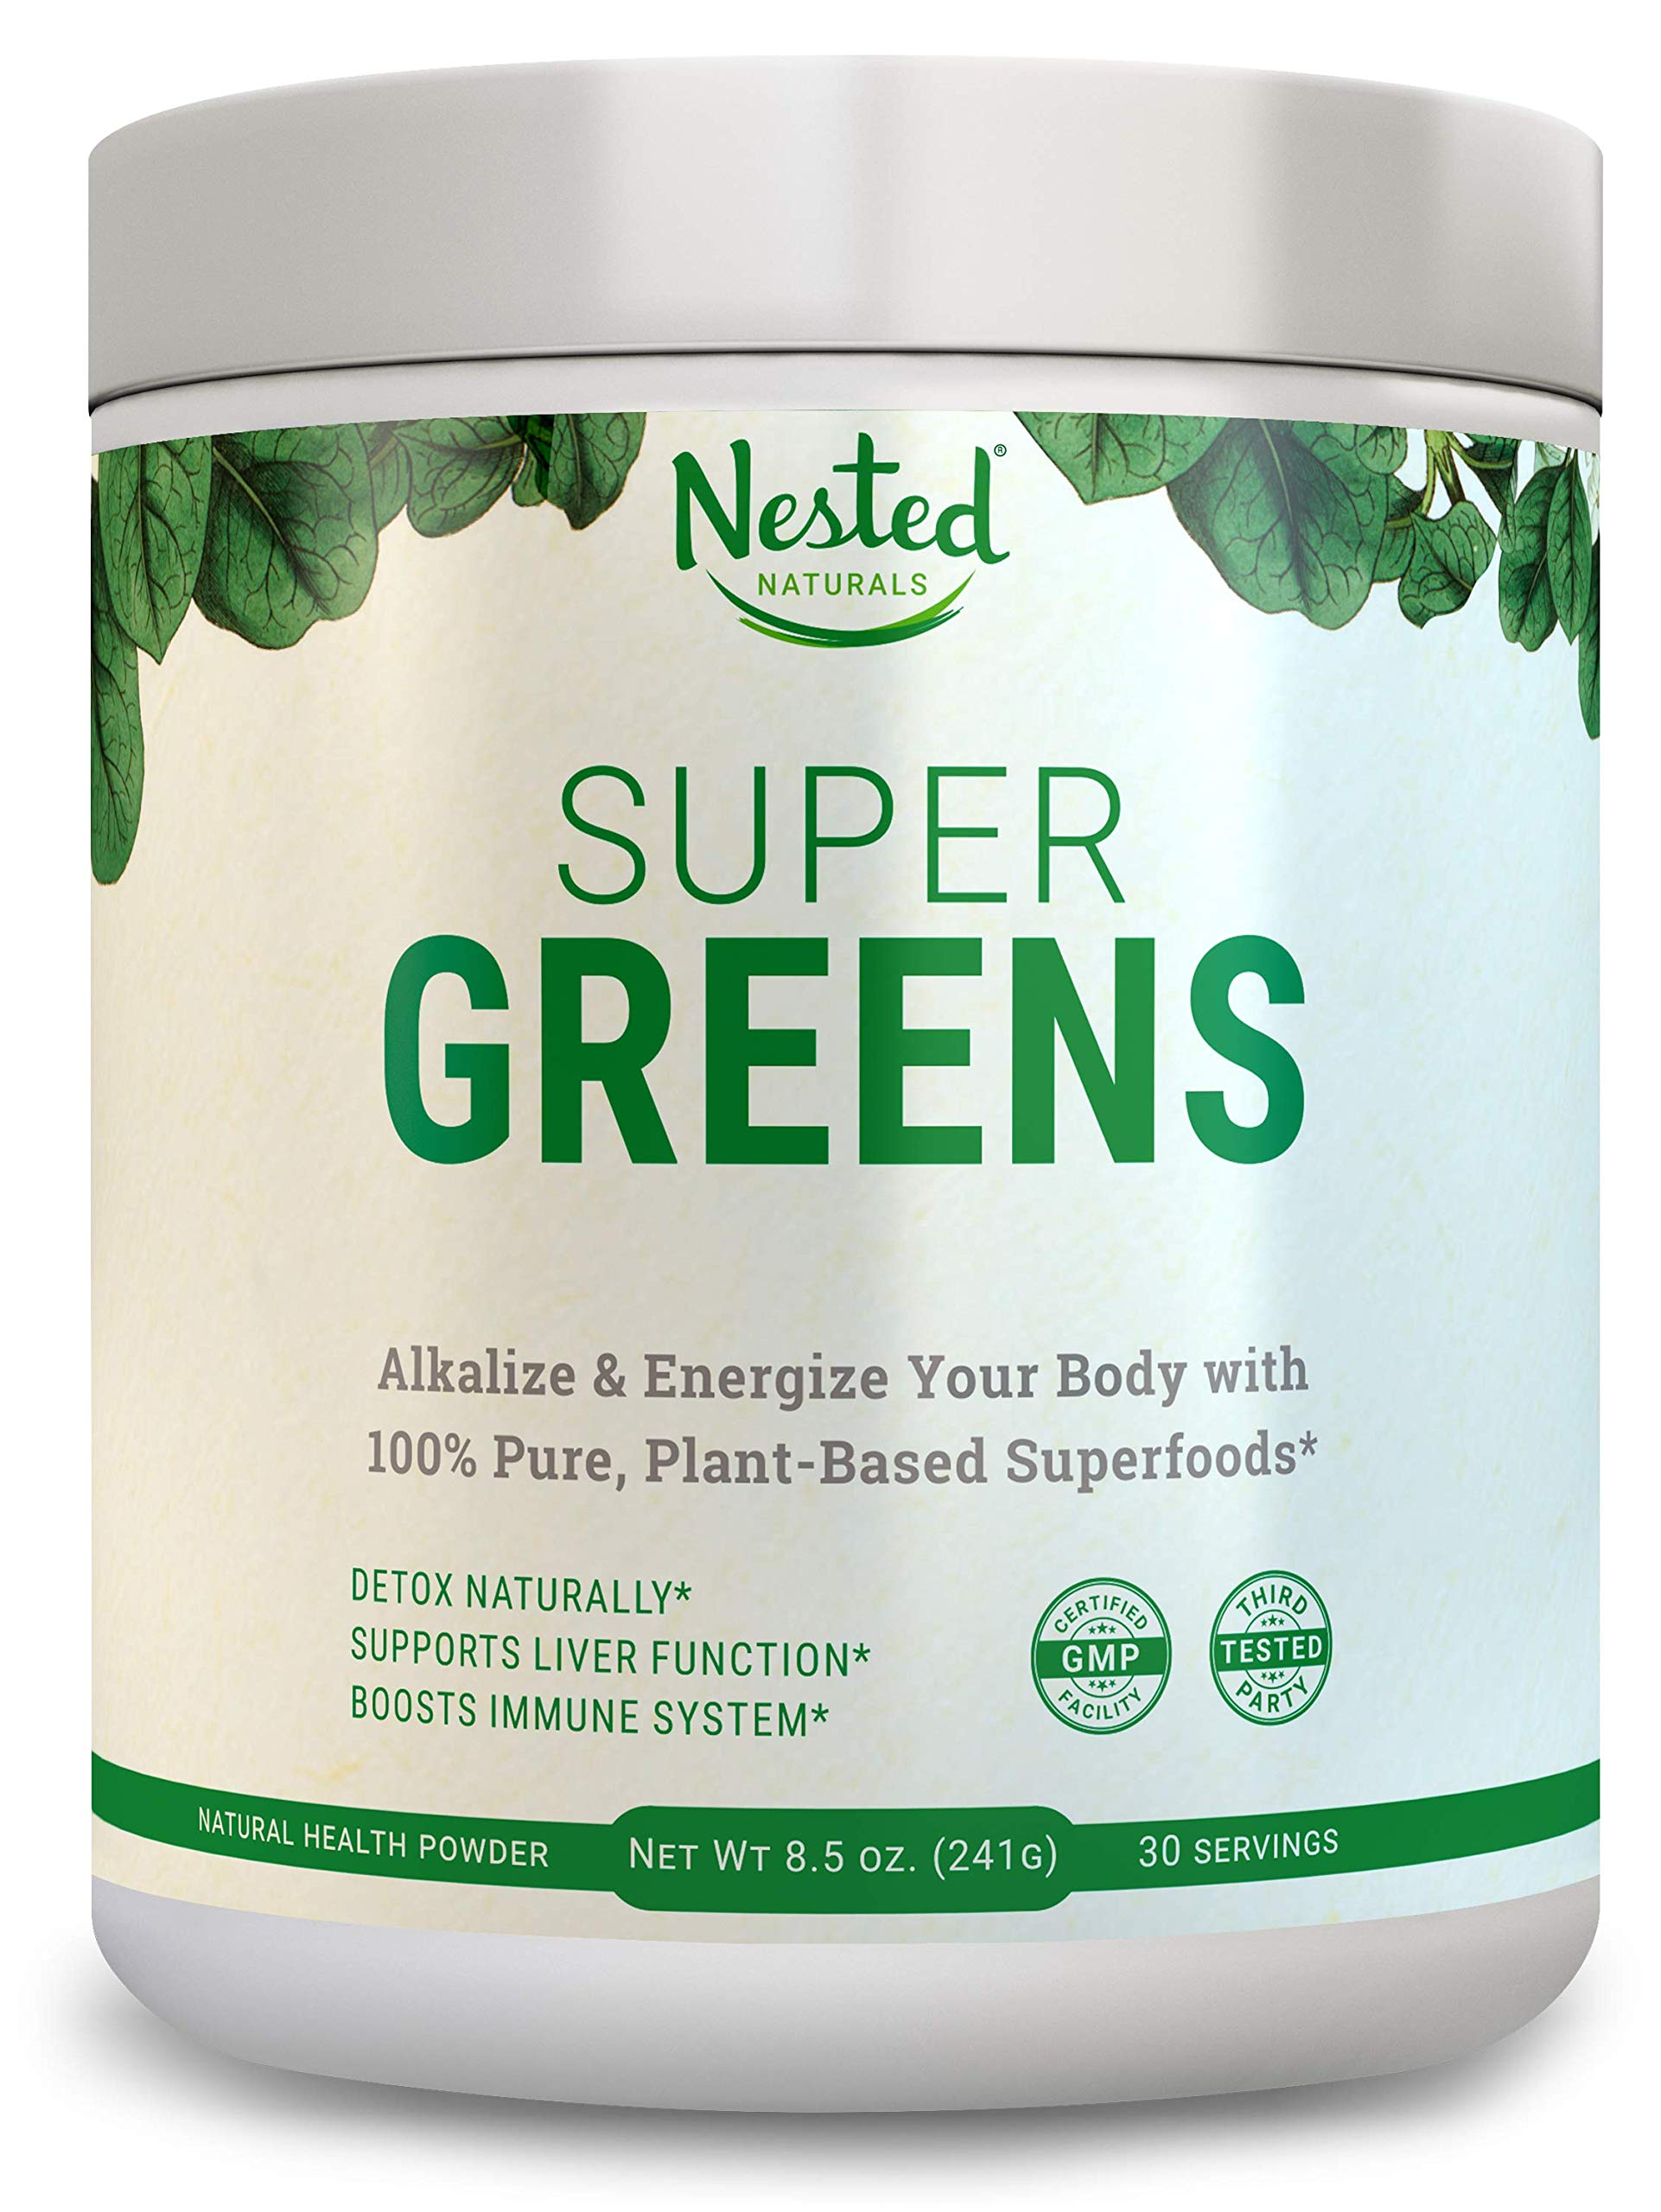 Super Greens | Best Green Veggie Superfood Powder | 30 Servings | 20 Whole Foods (Wheat Grass, Spirulina, Chlorella, Kale, Barley), Probiotics, Fiber, Enzymes | GMO, Soy, Gluten-Free Juice Supplement